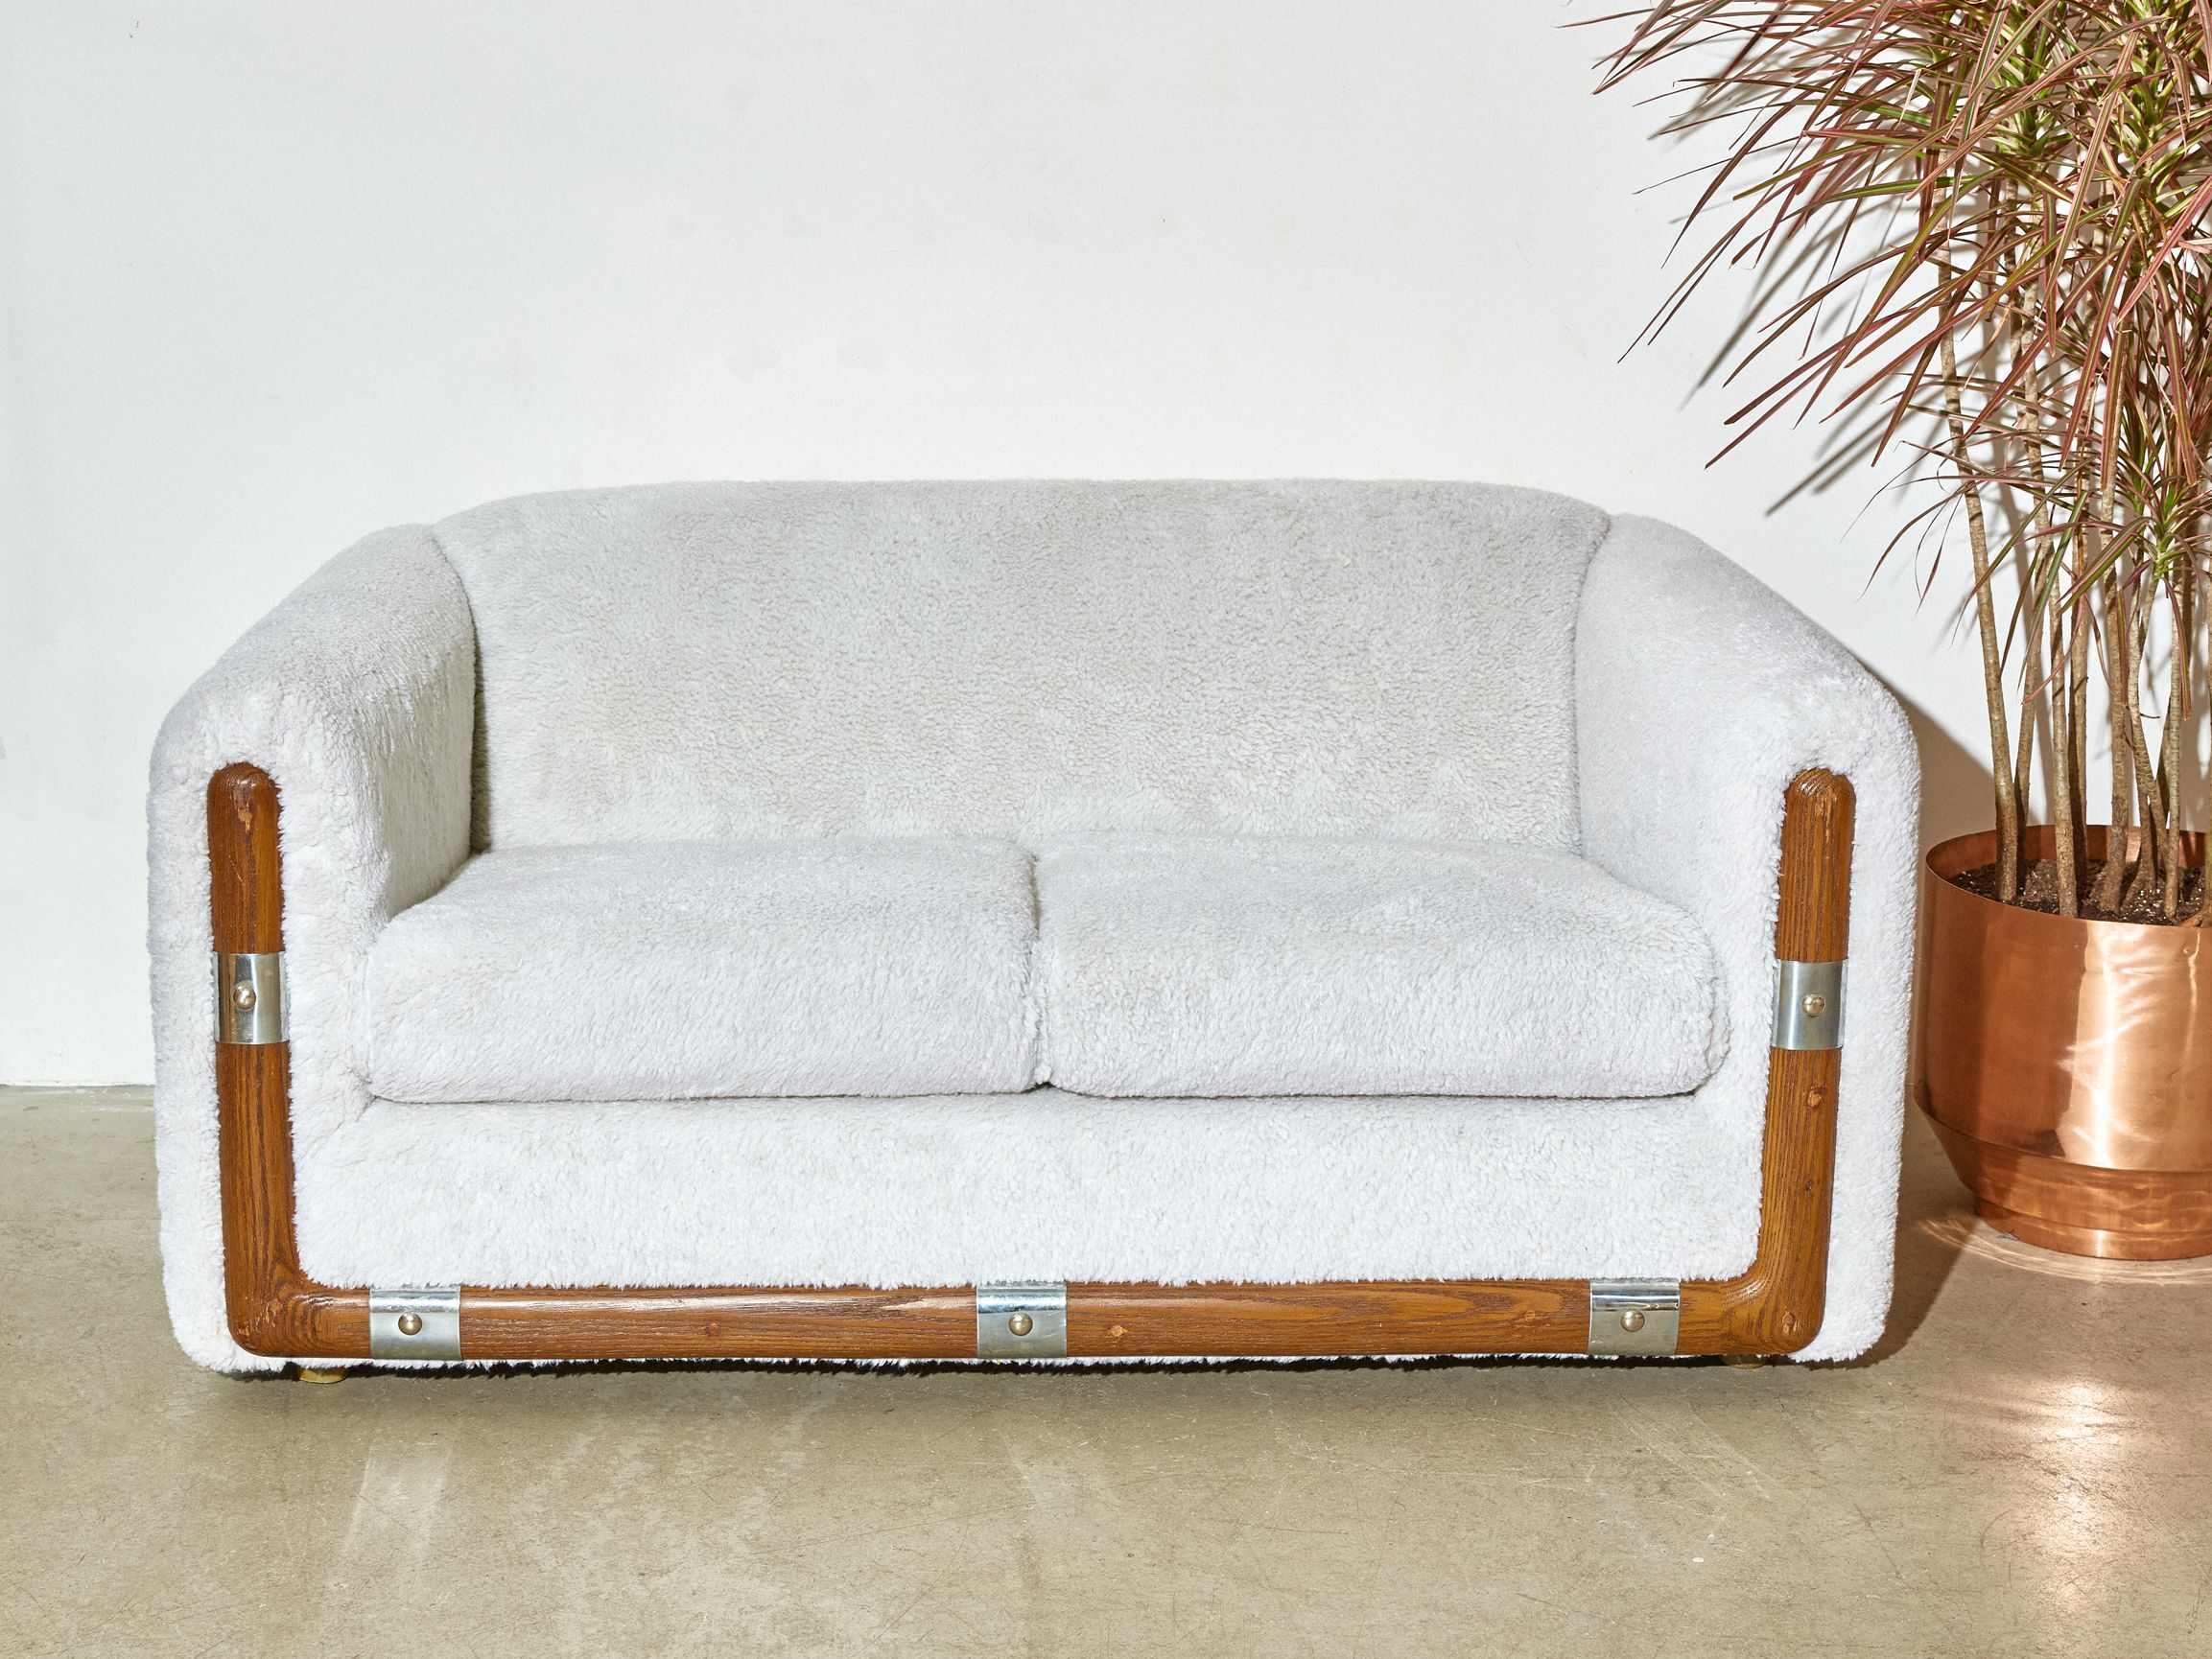 Super Cozy Vintage Loveseat Circa 1970 Reupholstered With Fuzzy Off White